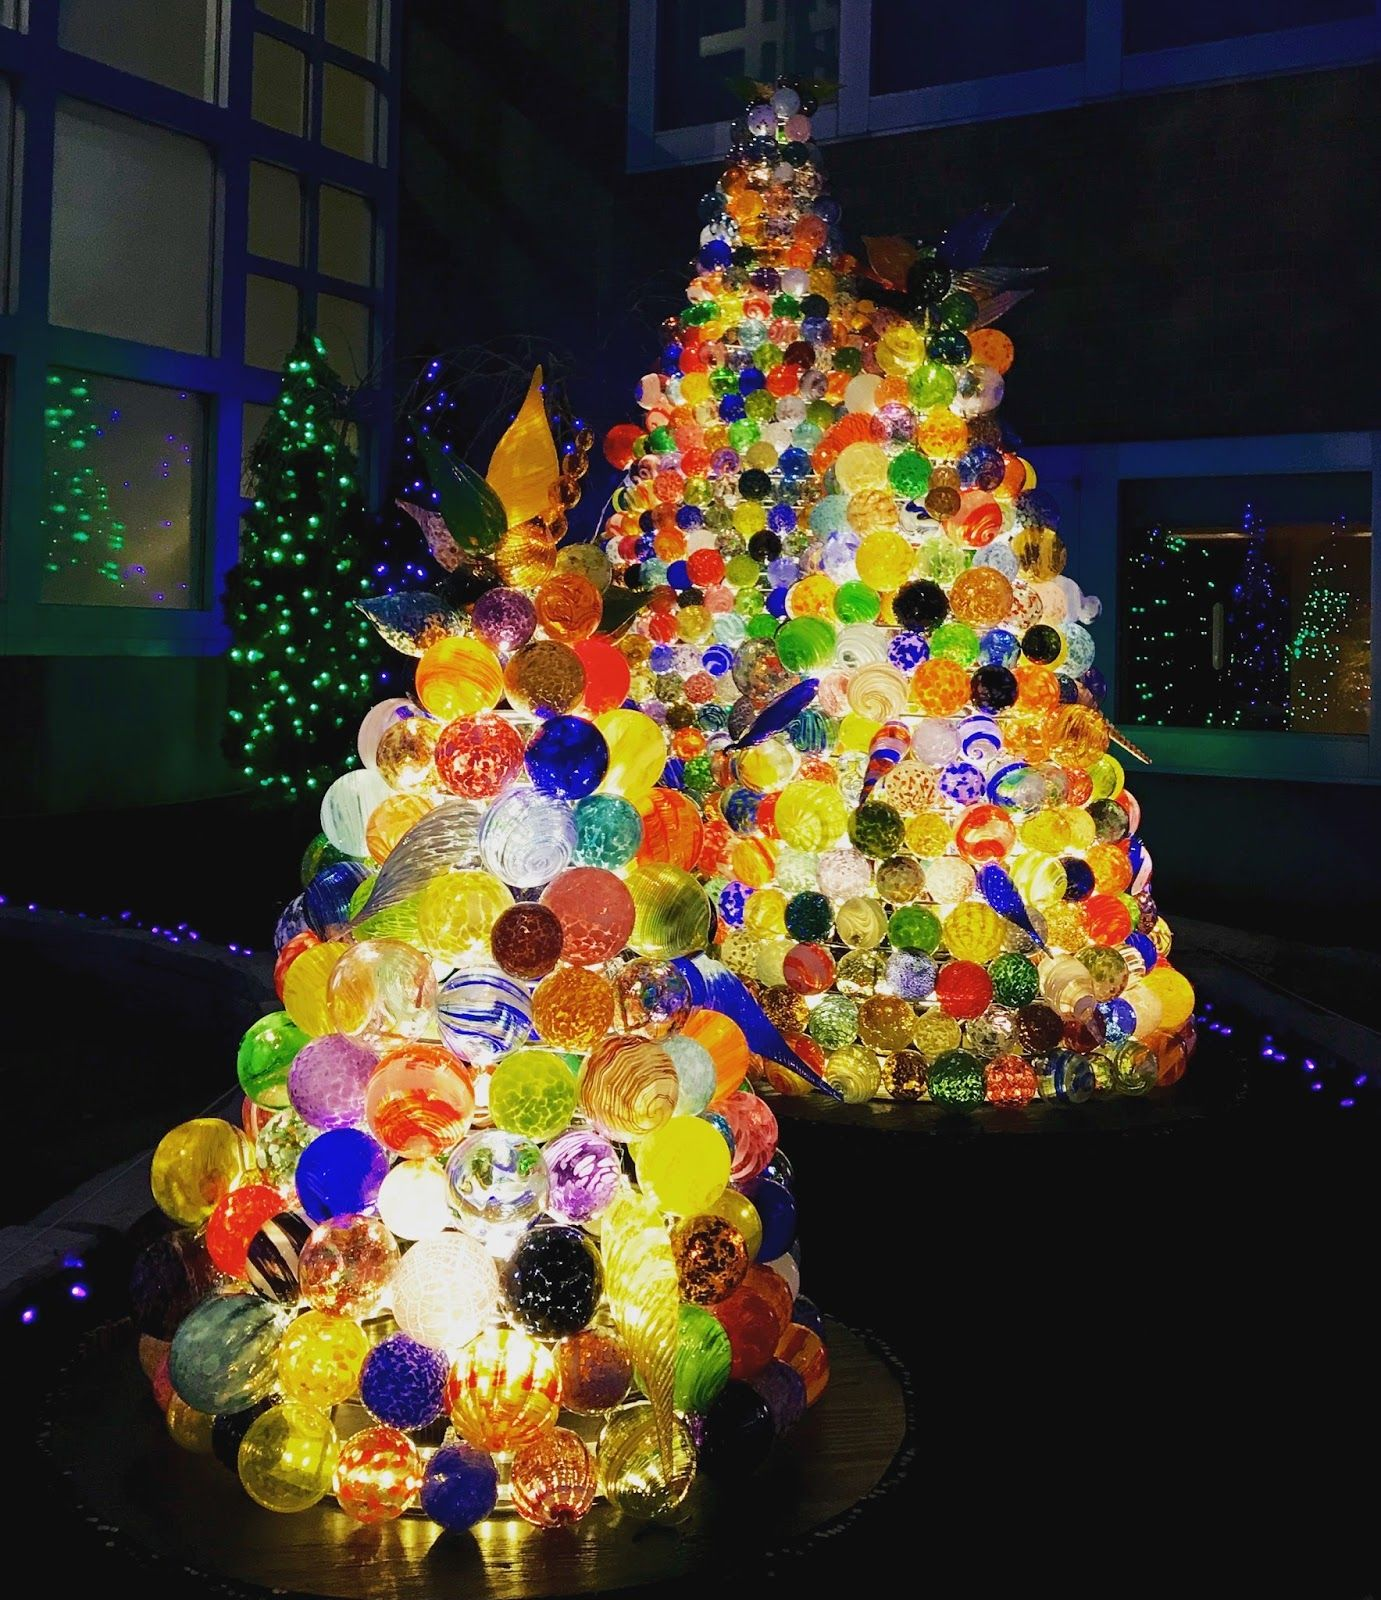 Christmas glass display at Franklin Park Conservatory